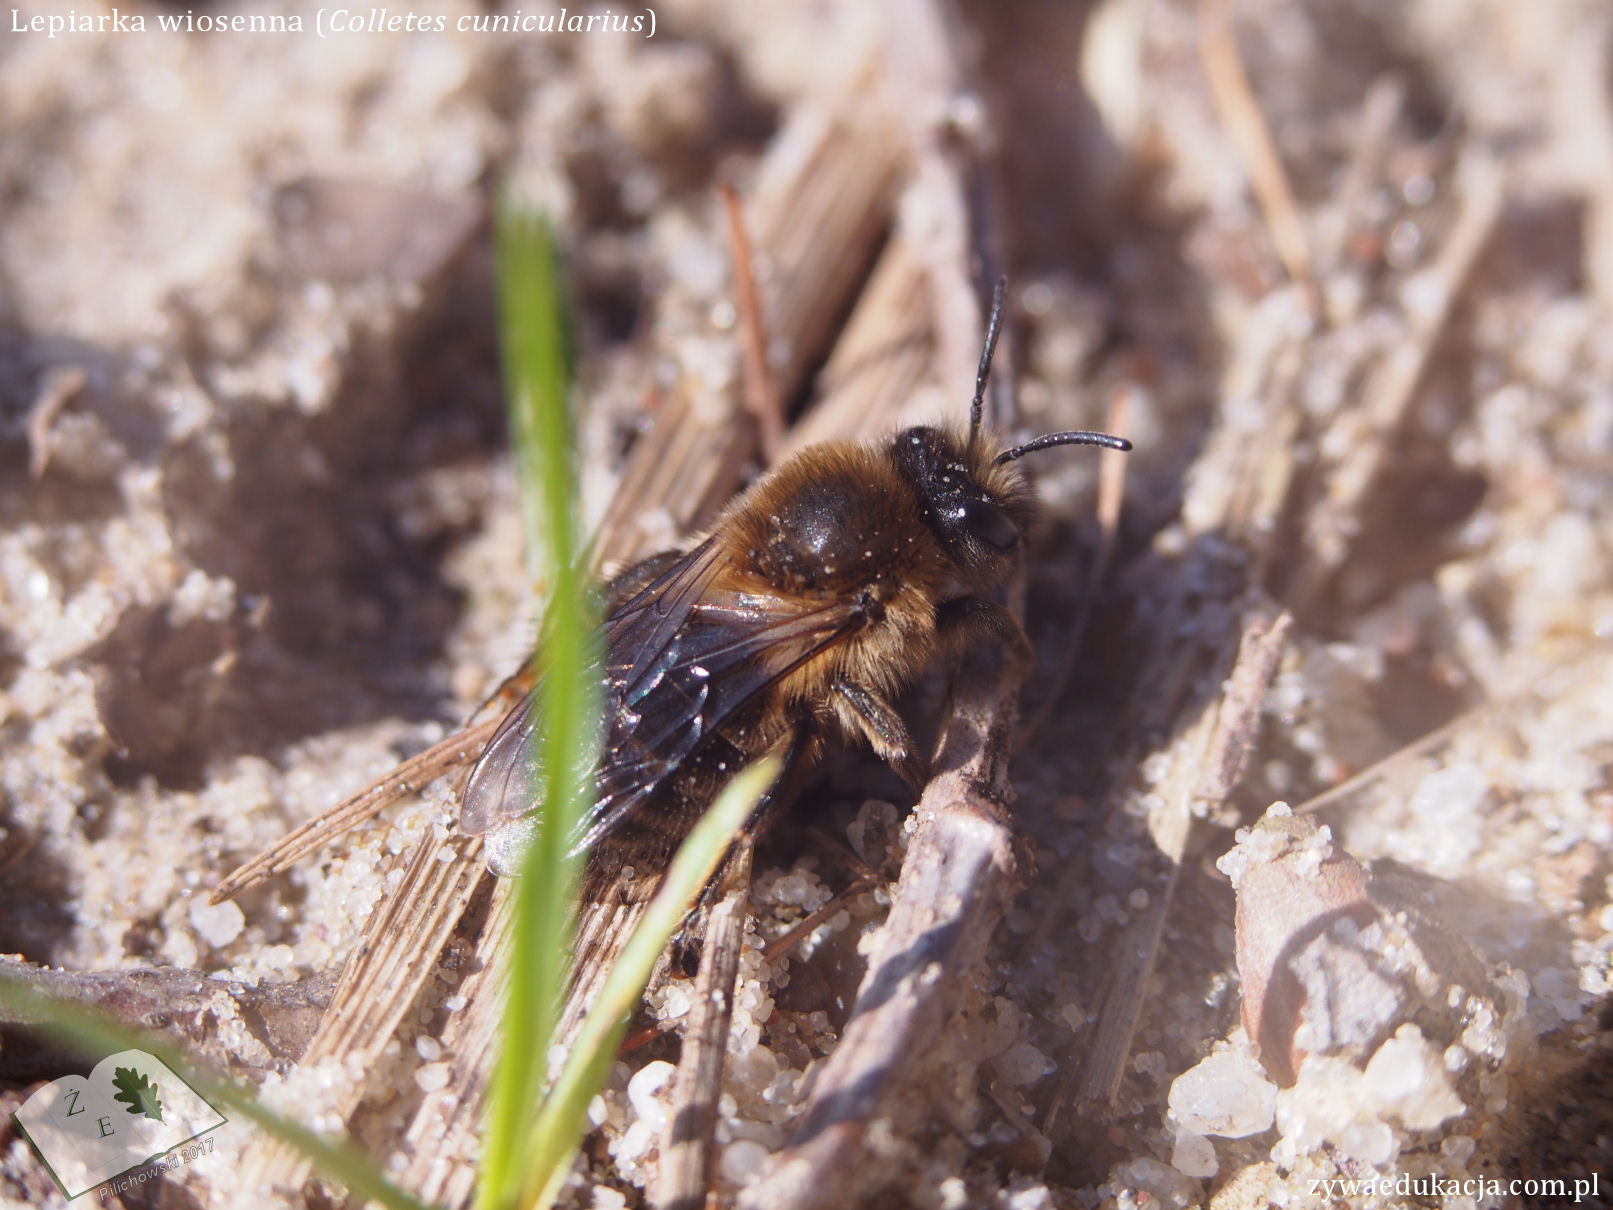 colletes0317